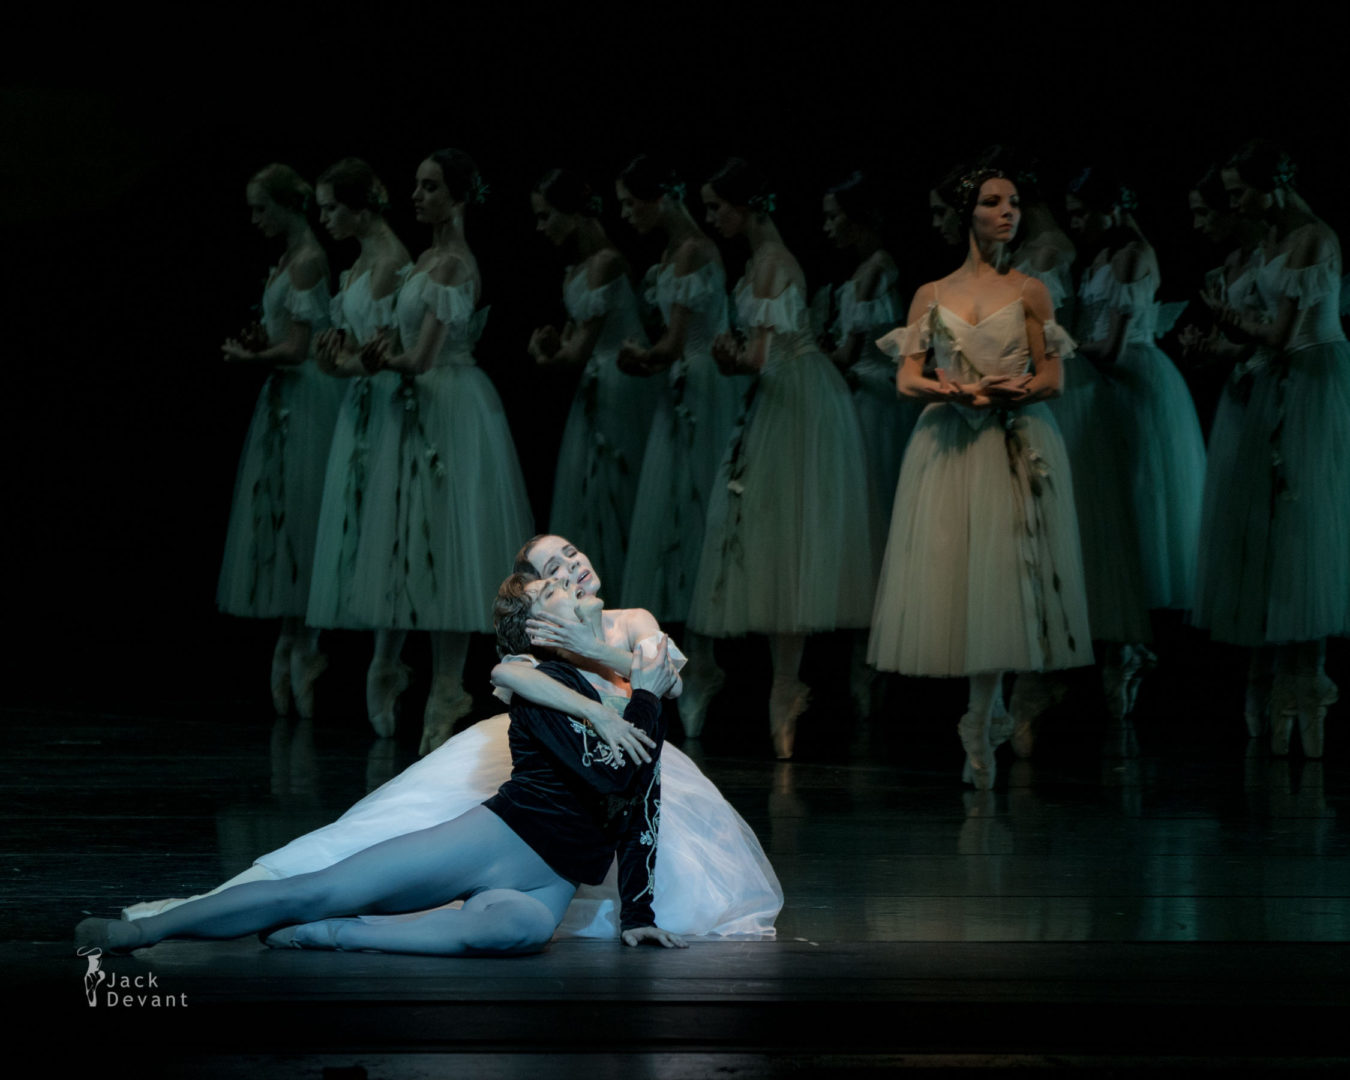 Maria Shirinkina and Vladimir Shklyarov in Giselle Myrtha Ivy Amista